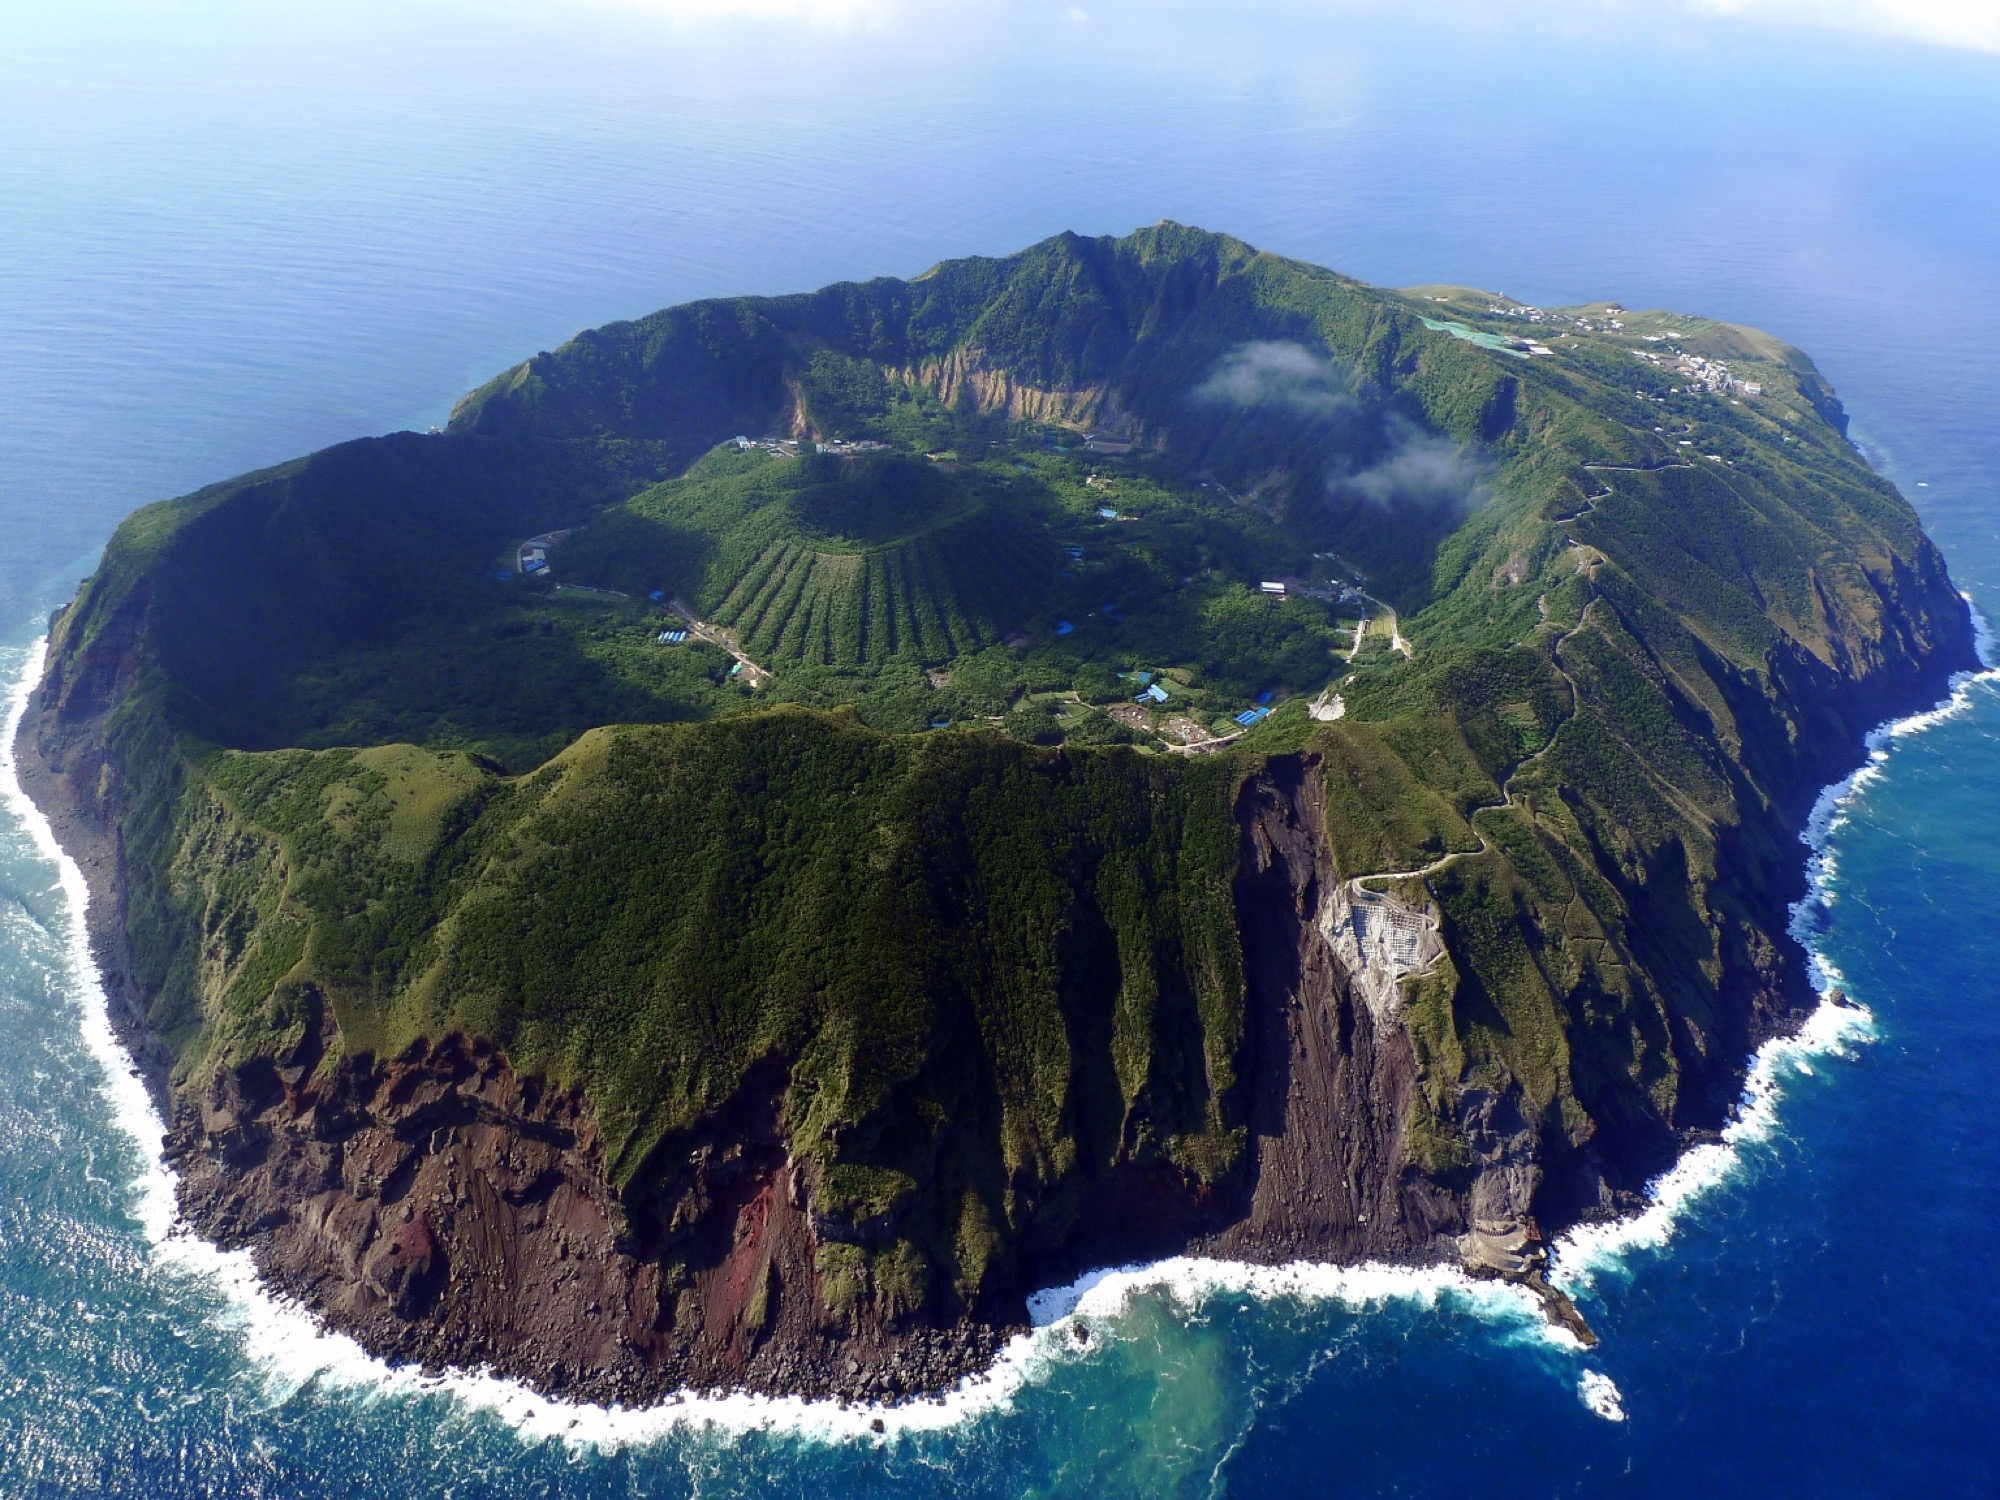 Photo of Aogashima from the air